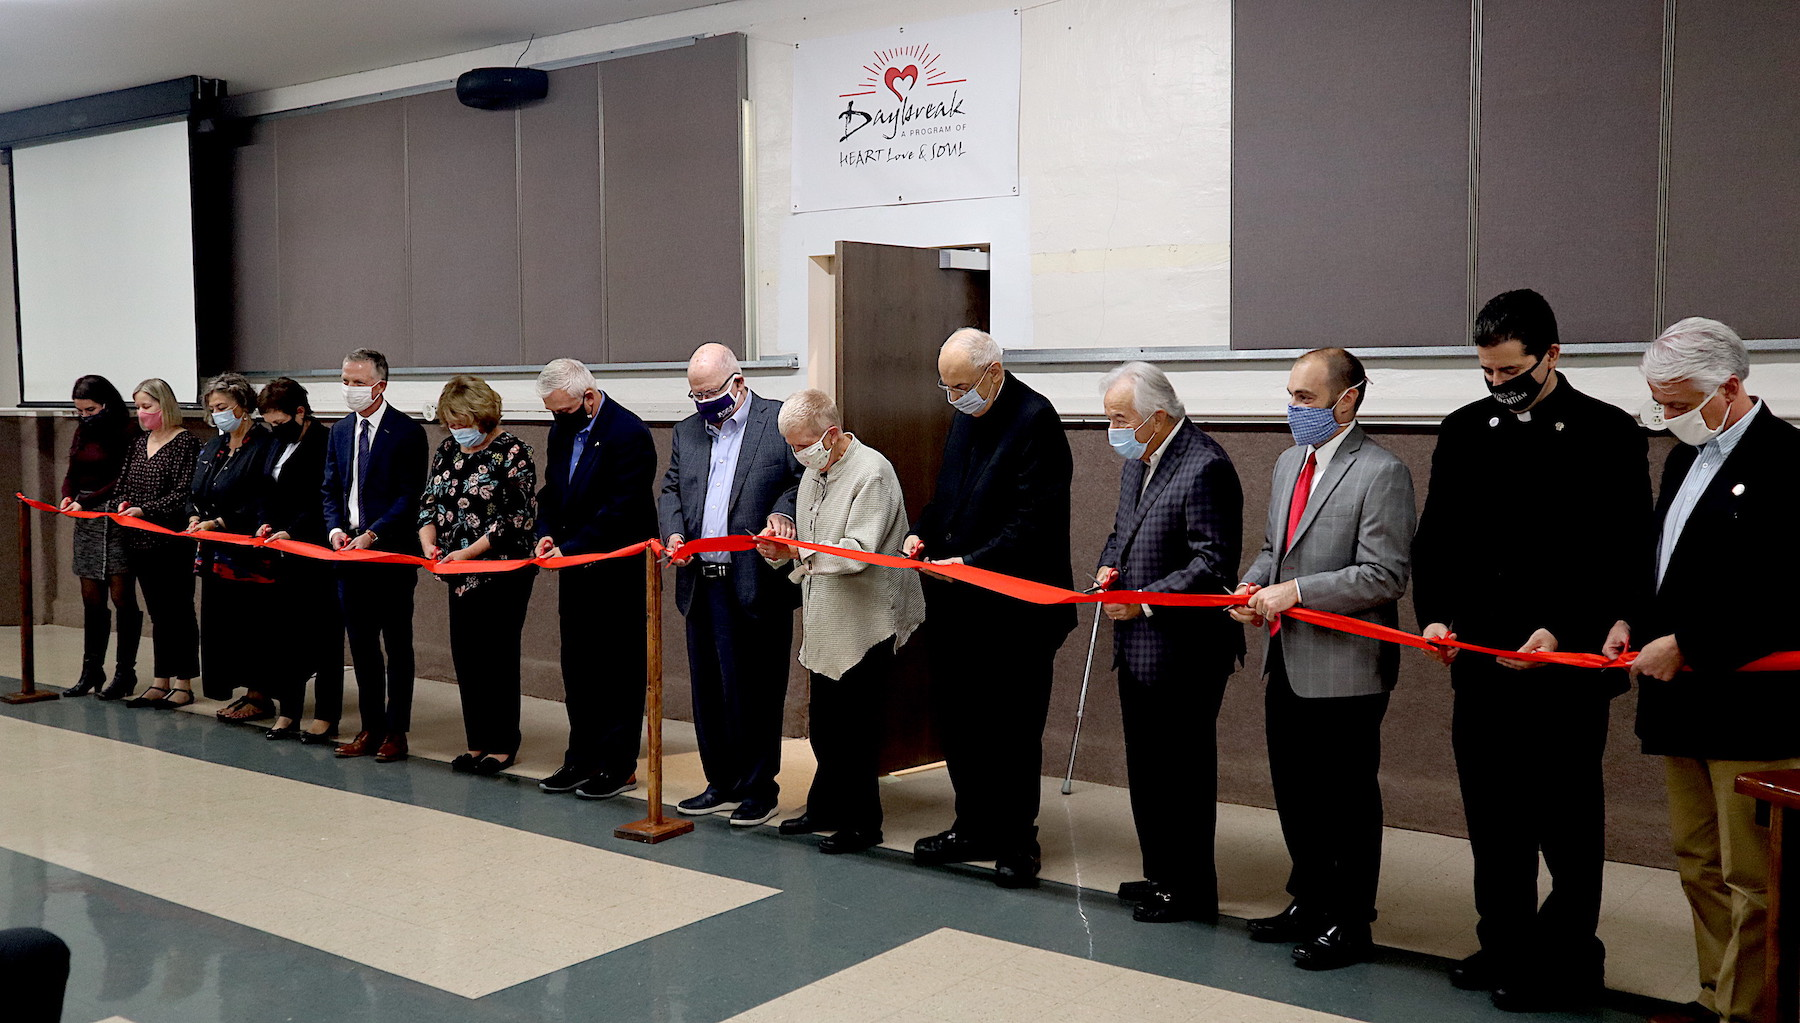 Local officials and administrators from Heart Love & Soul food pantry were on hand to commemorate the opening of the Sr. Beth Brosmer Center, home of the new Daybreak program, which will increase access to services and offer additional support for people experiencing homelessness.